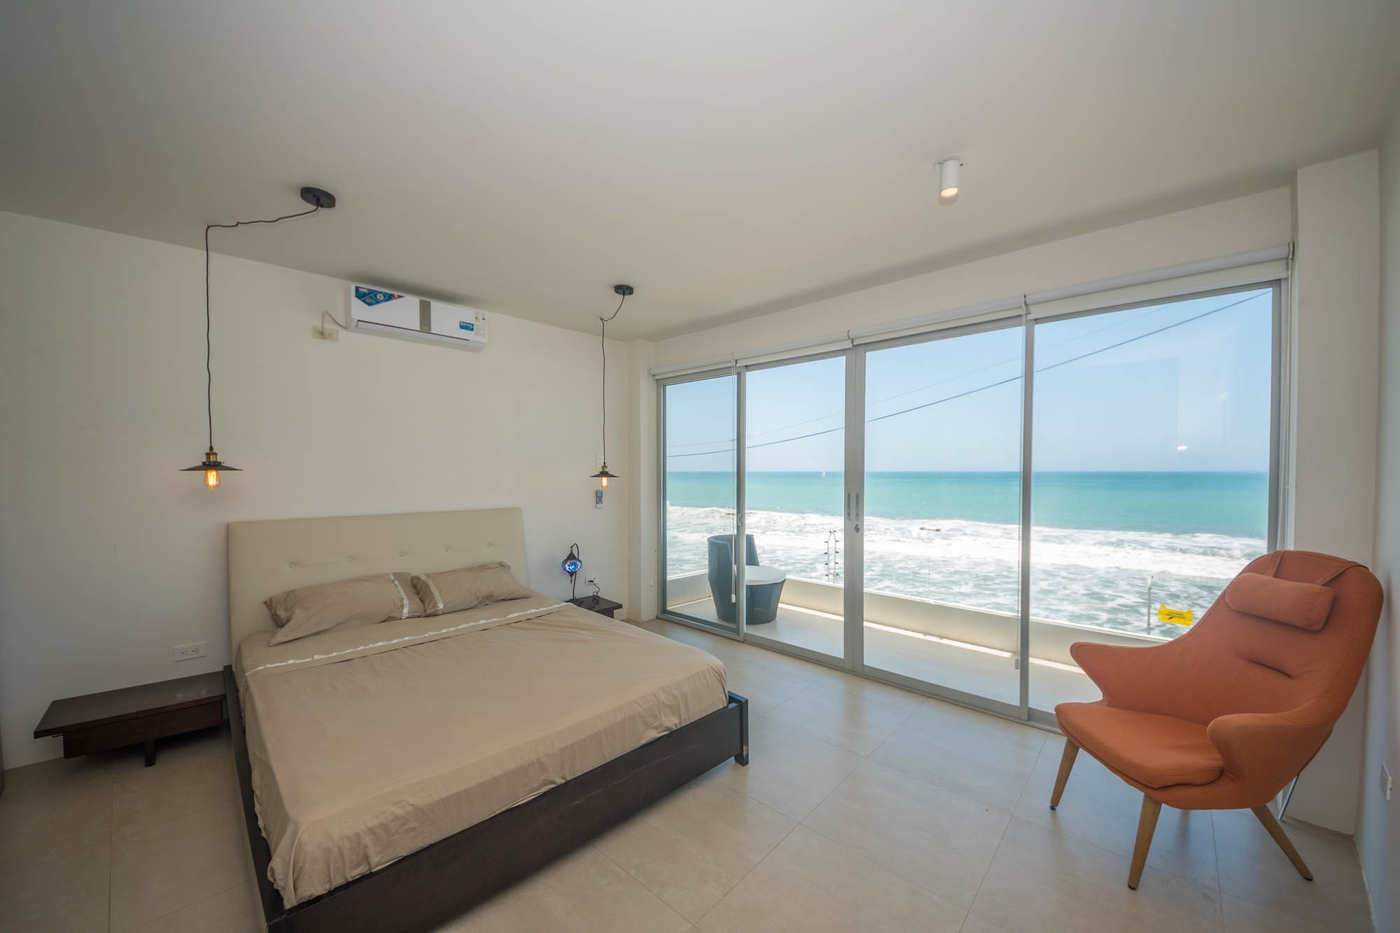 <p>At the holiday's price of $250 per night, this…